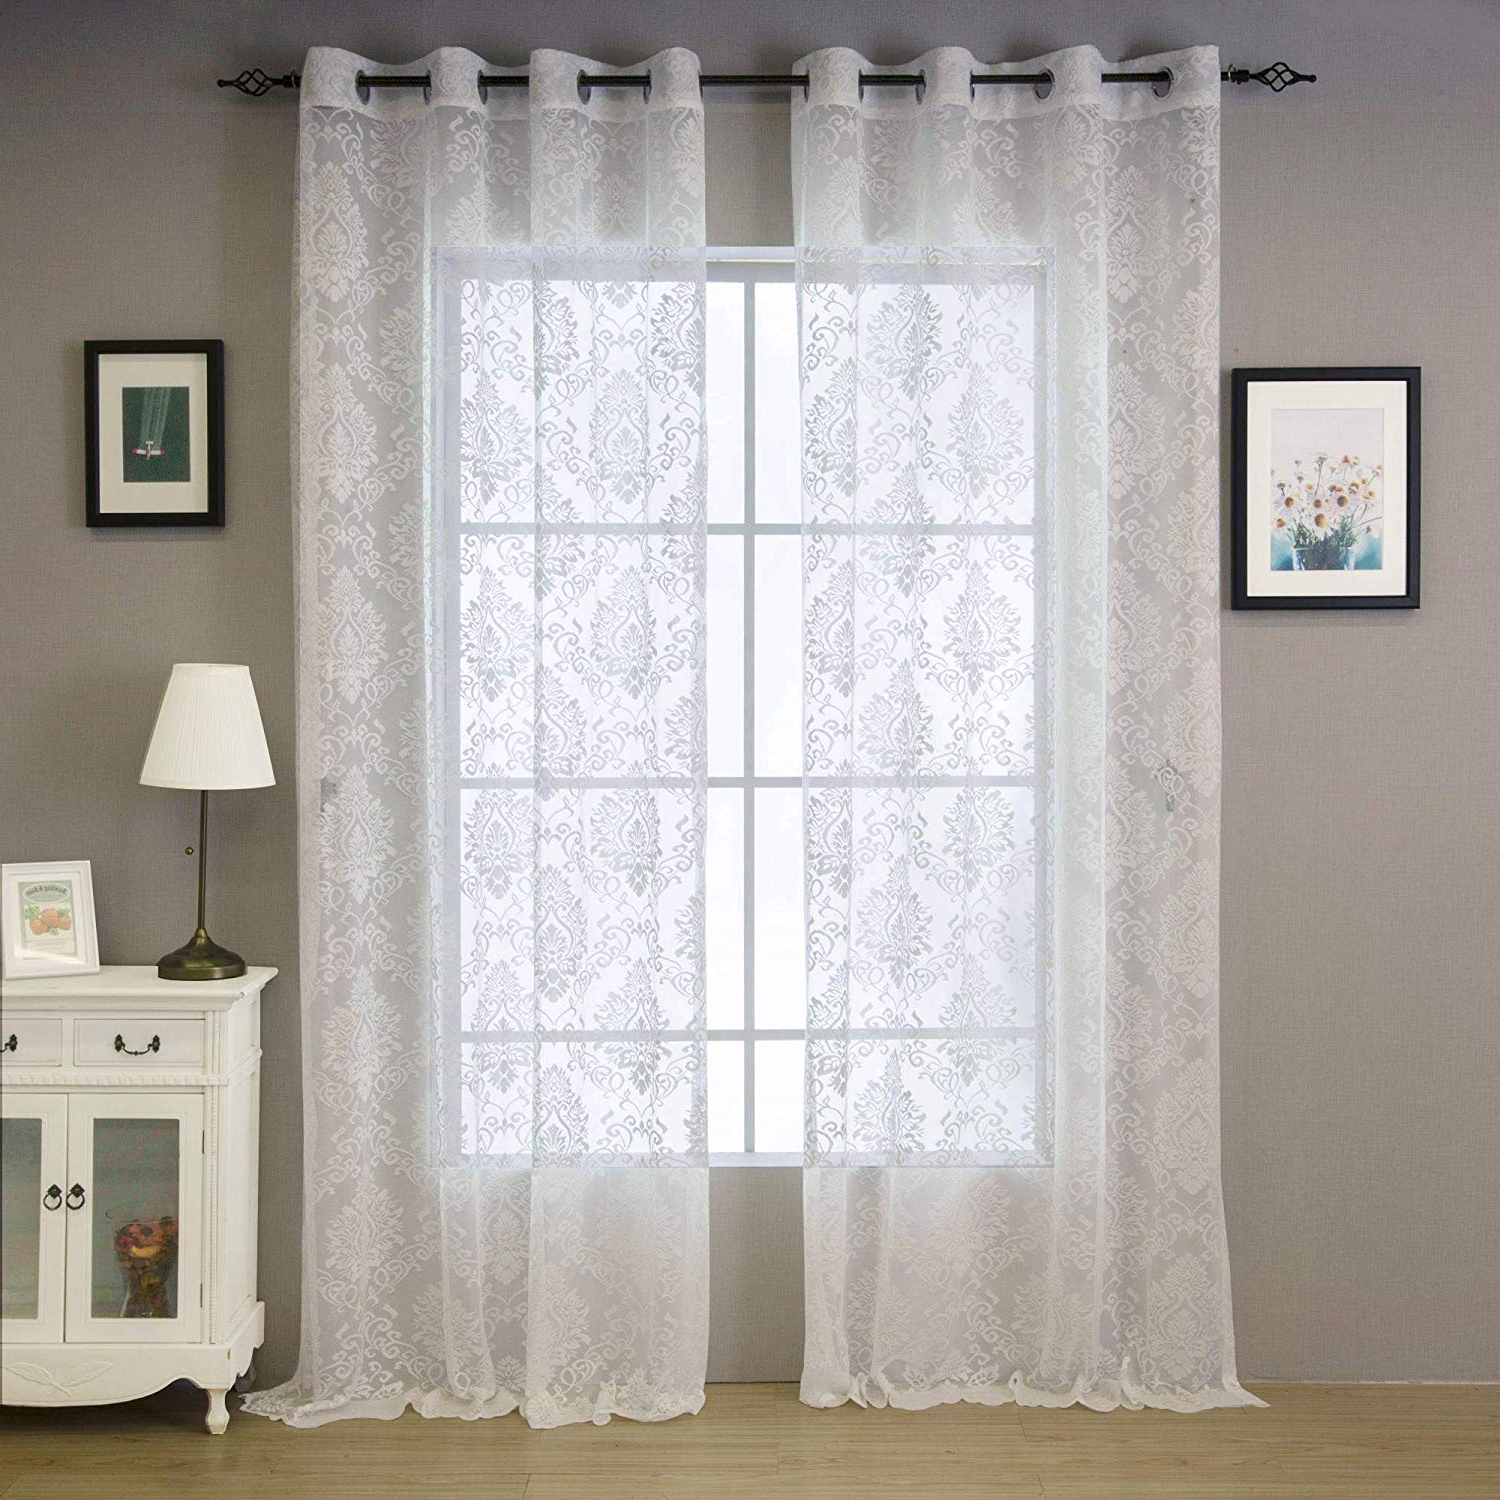 """Valea Home Lace Sheer Curtains Grommet Drapes For Bedroom Living Room  European Style, 54"""" X 96"""", White, 1 Panel Throughout Best And Newest Luxurious Old World Style Lace Window Curtain Panels (View 18 of 20)"""